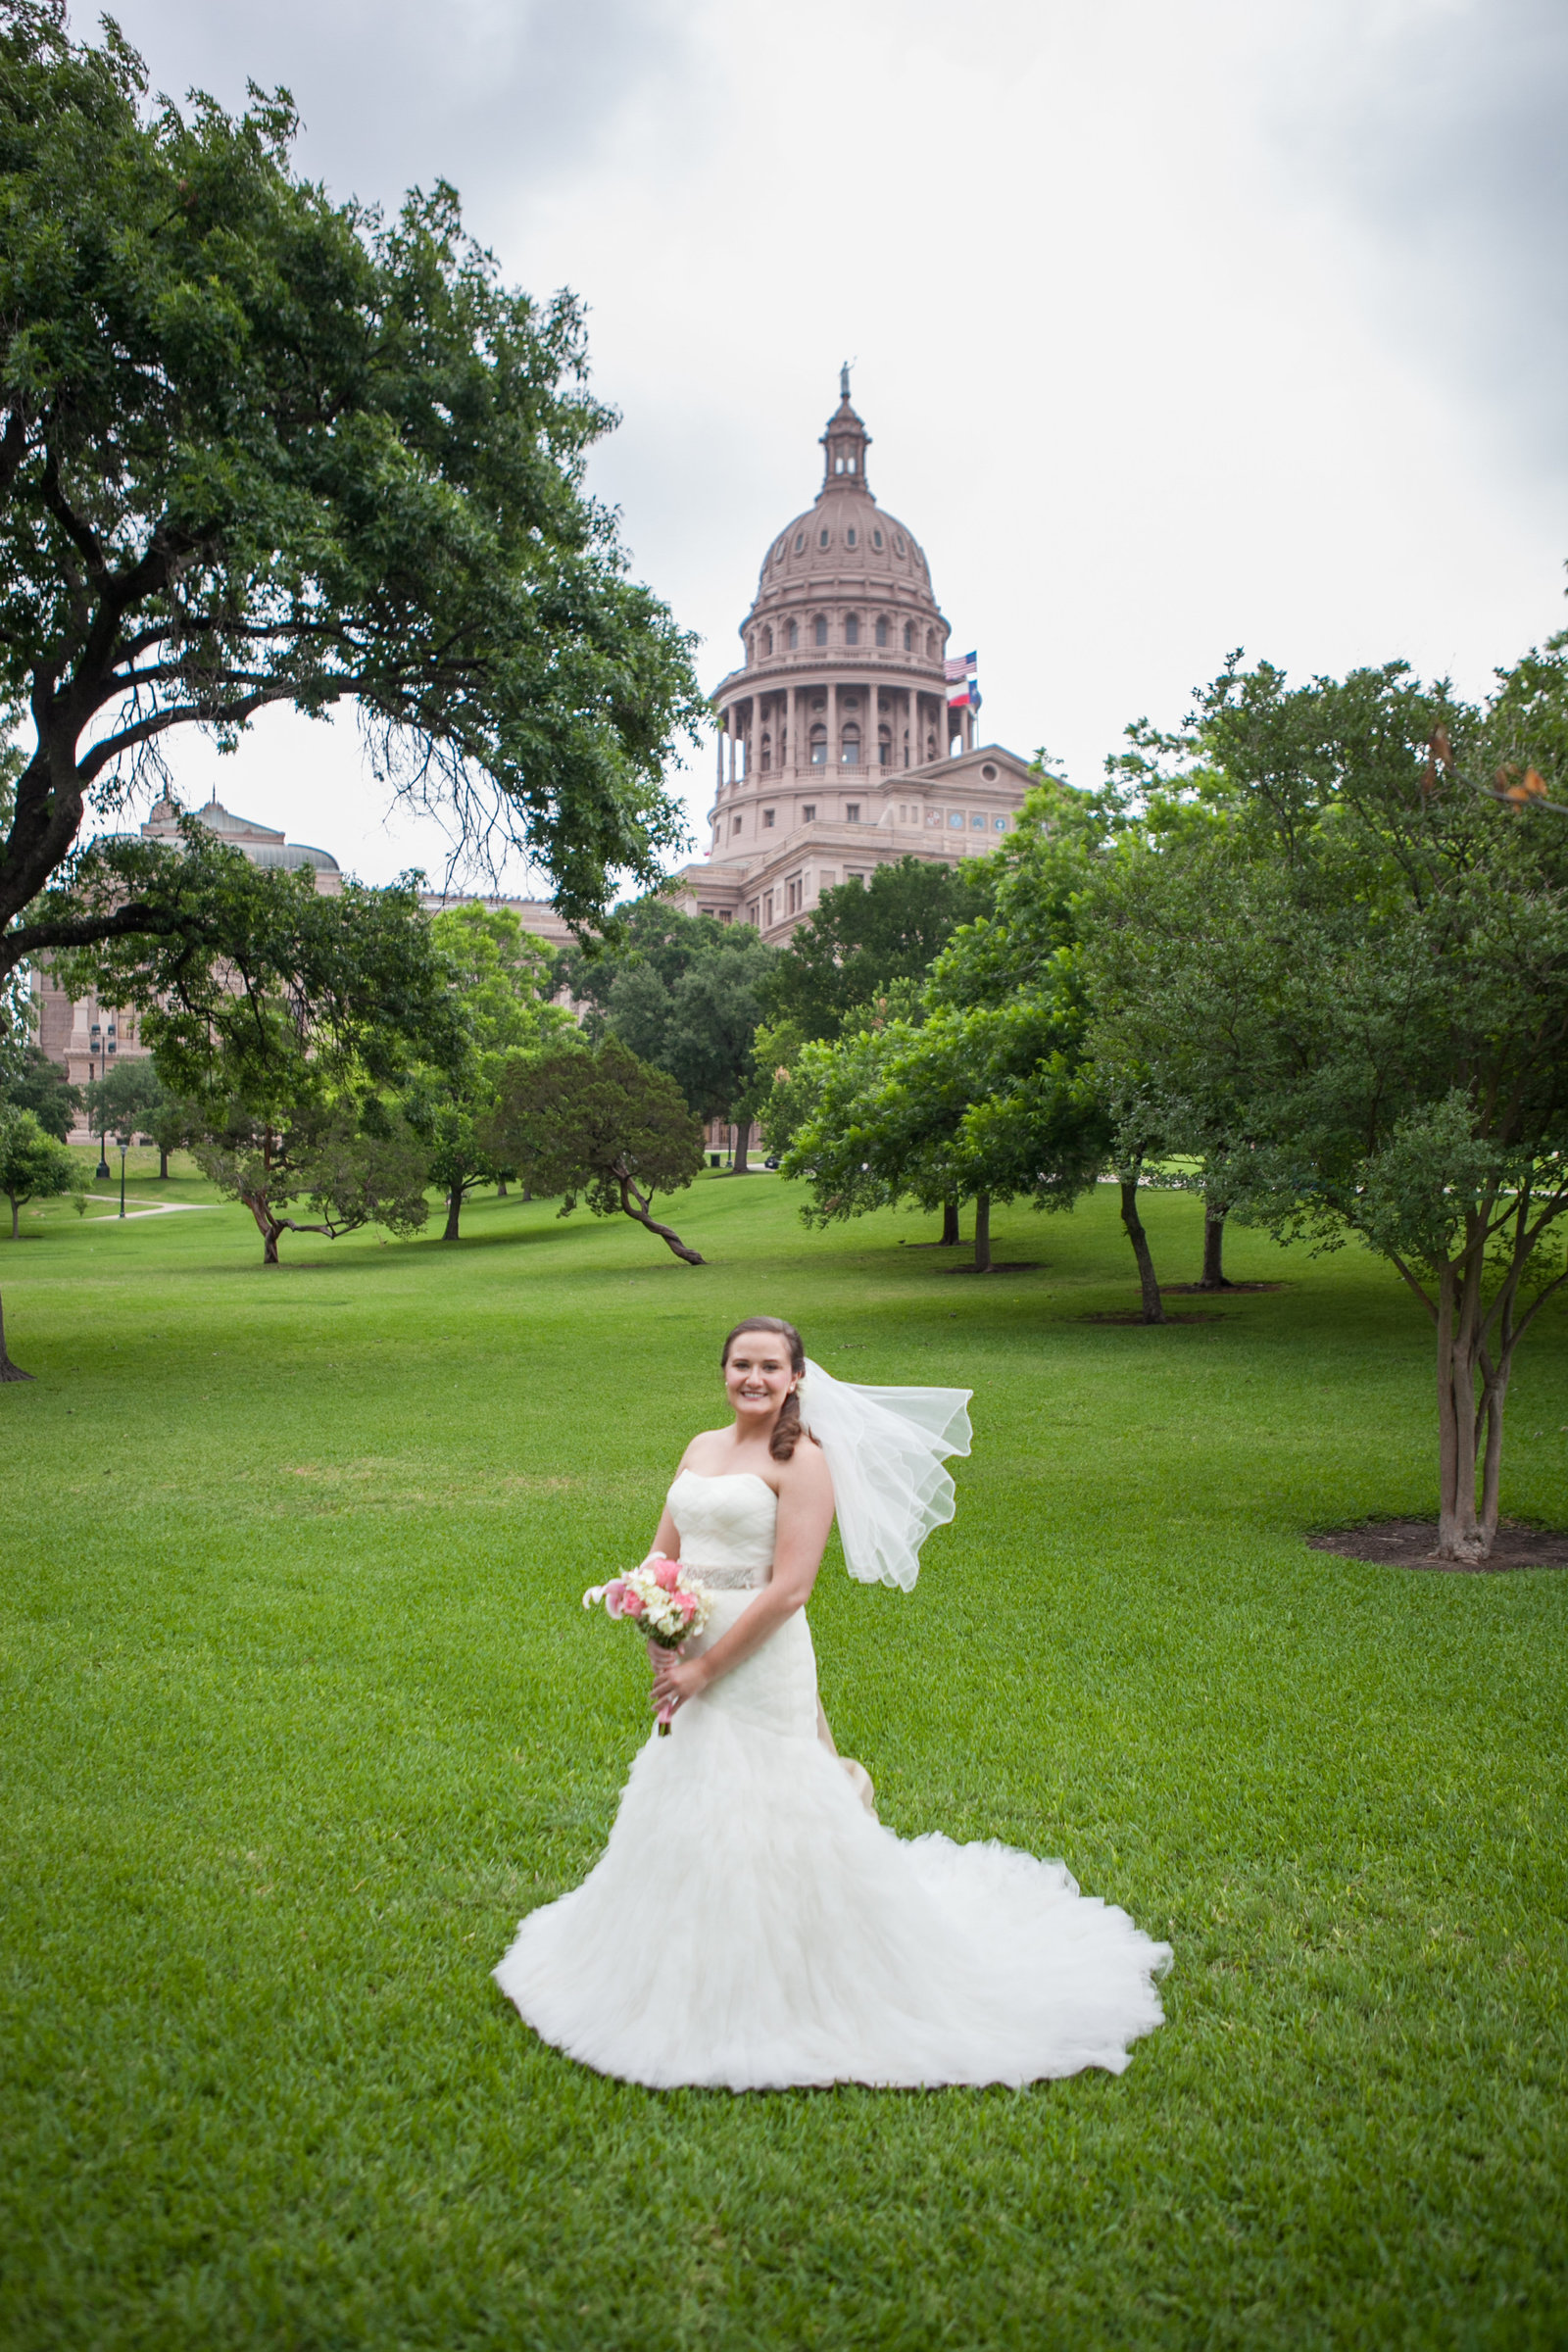 Austin Family Photographer, Tiffany Chapman, bride in front of capital on grass photo